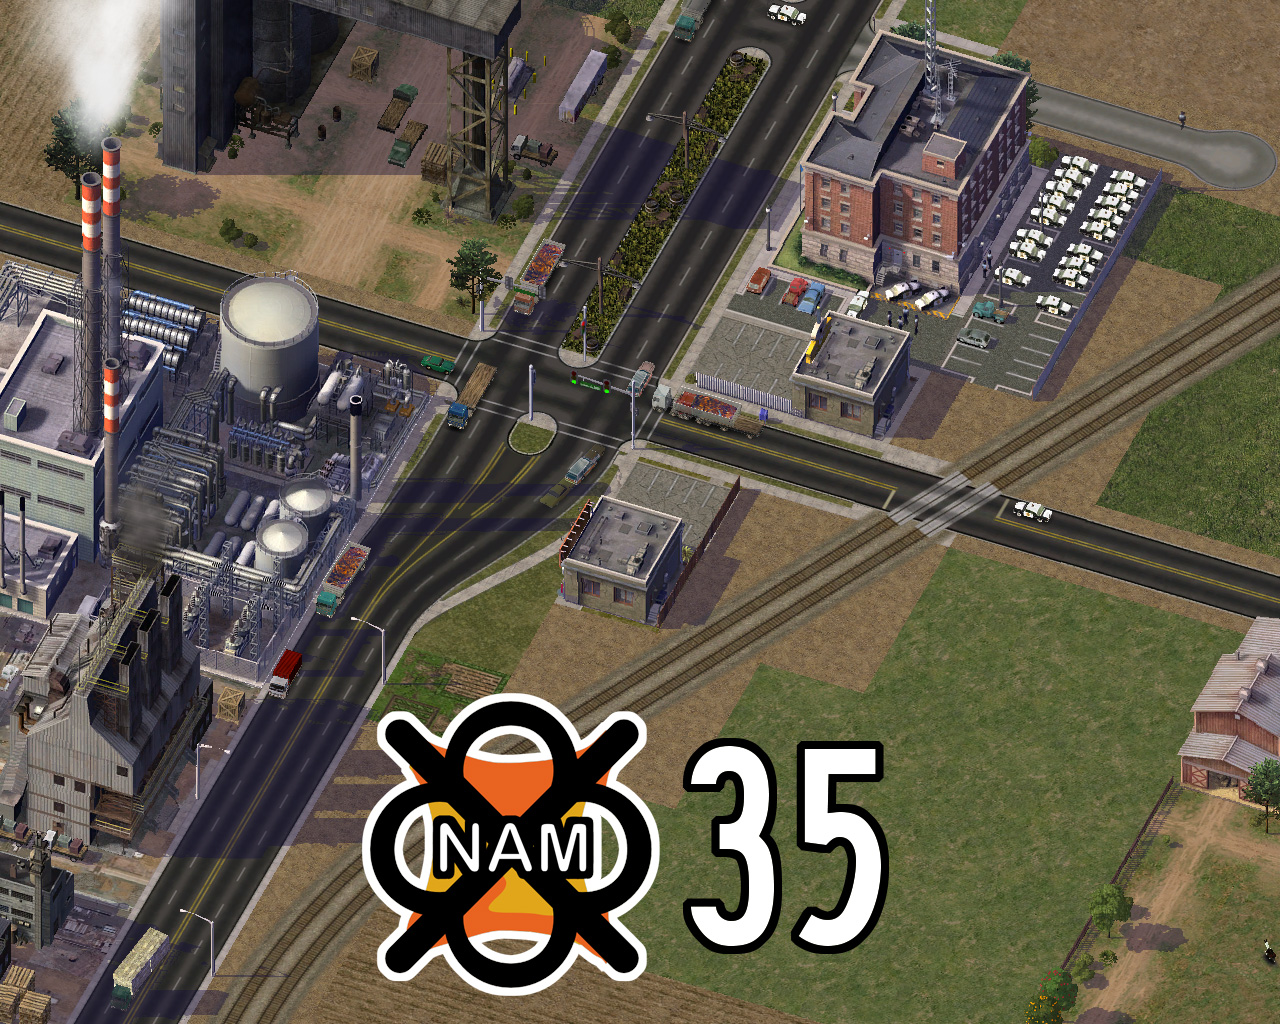 network addon mod 35 released for simcity 4 news mod db. Black Bedroom Furniture Sets. Home Design Ideas